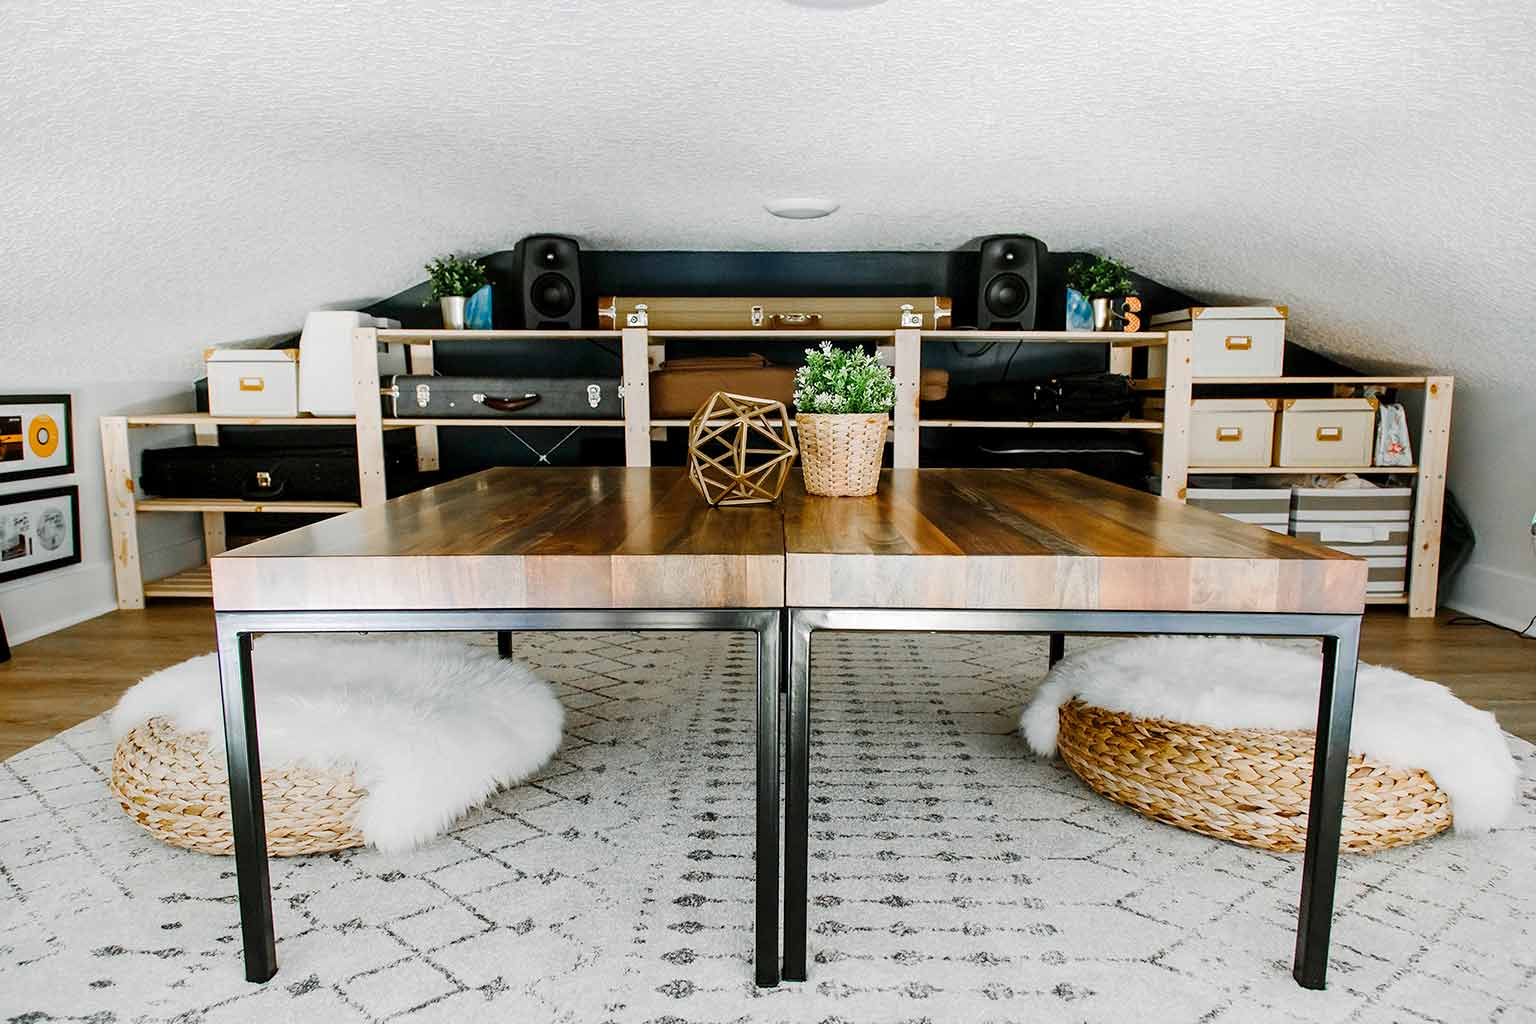 Loft with coffee tables and guitar storage - The Guest House Reveal - That Homebird Life Blog